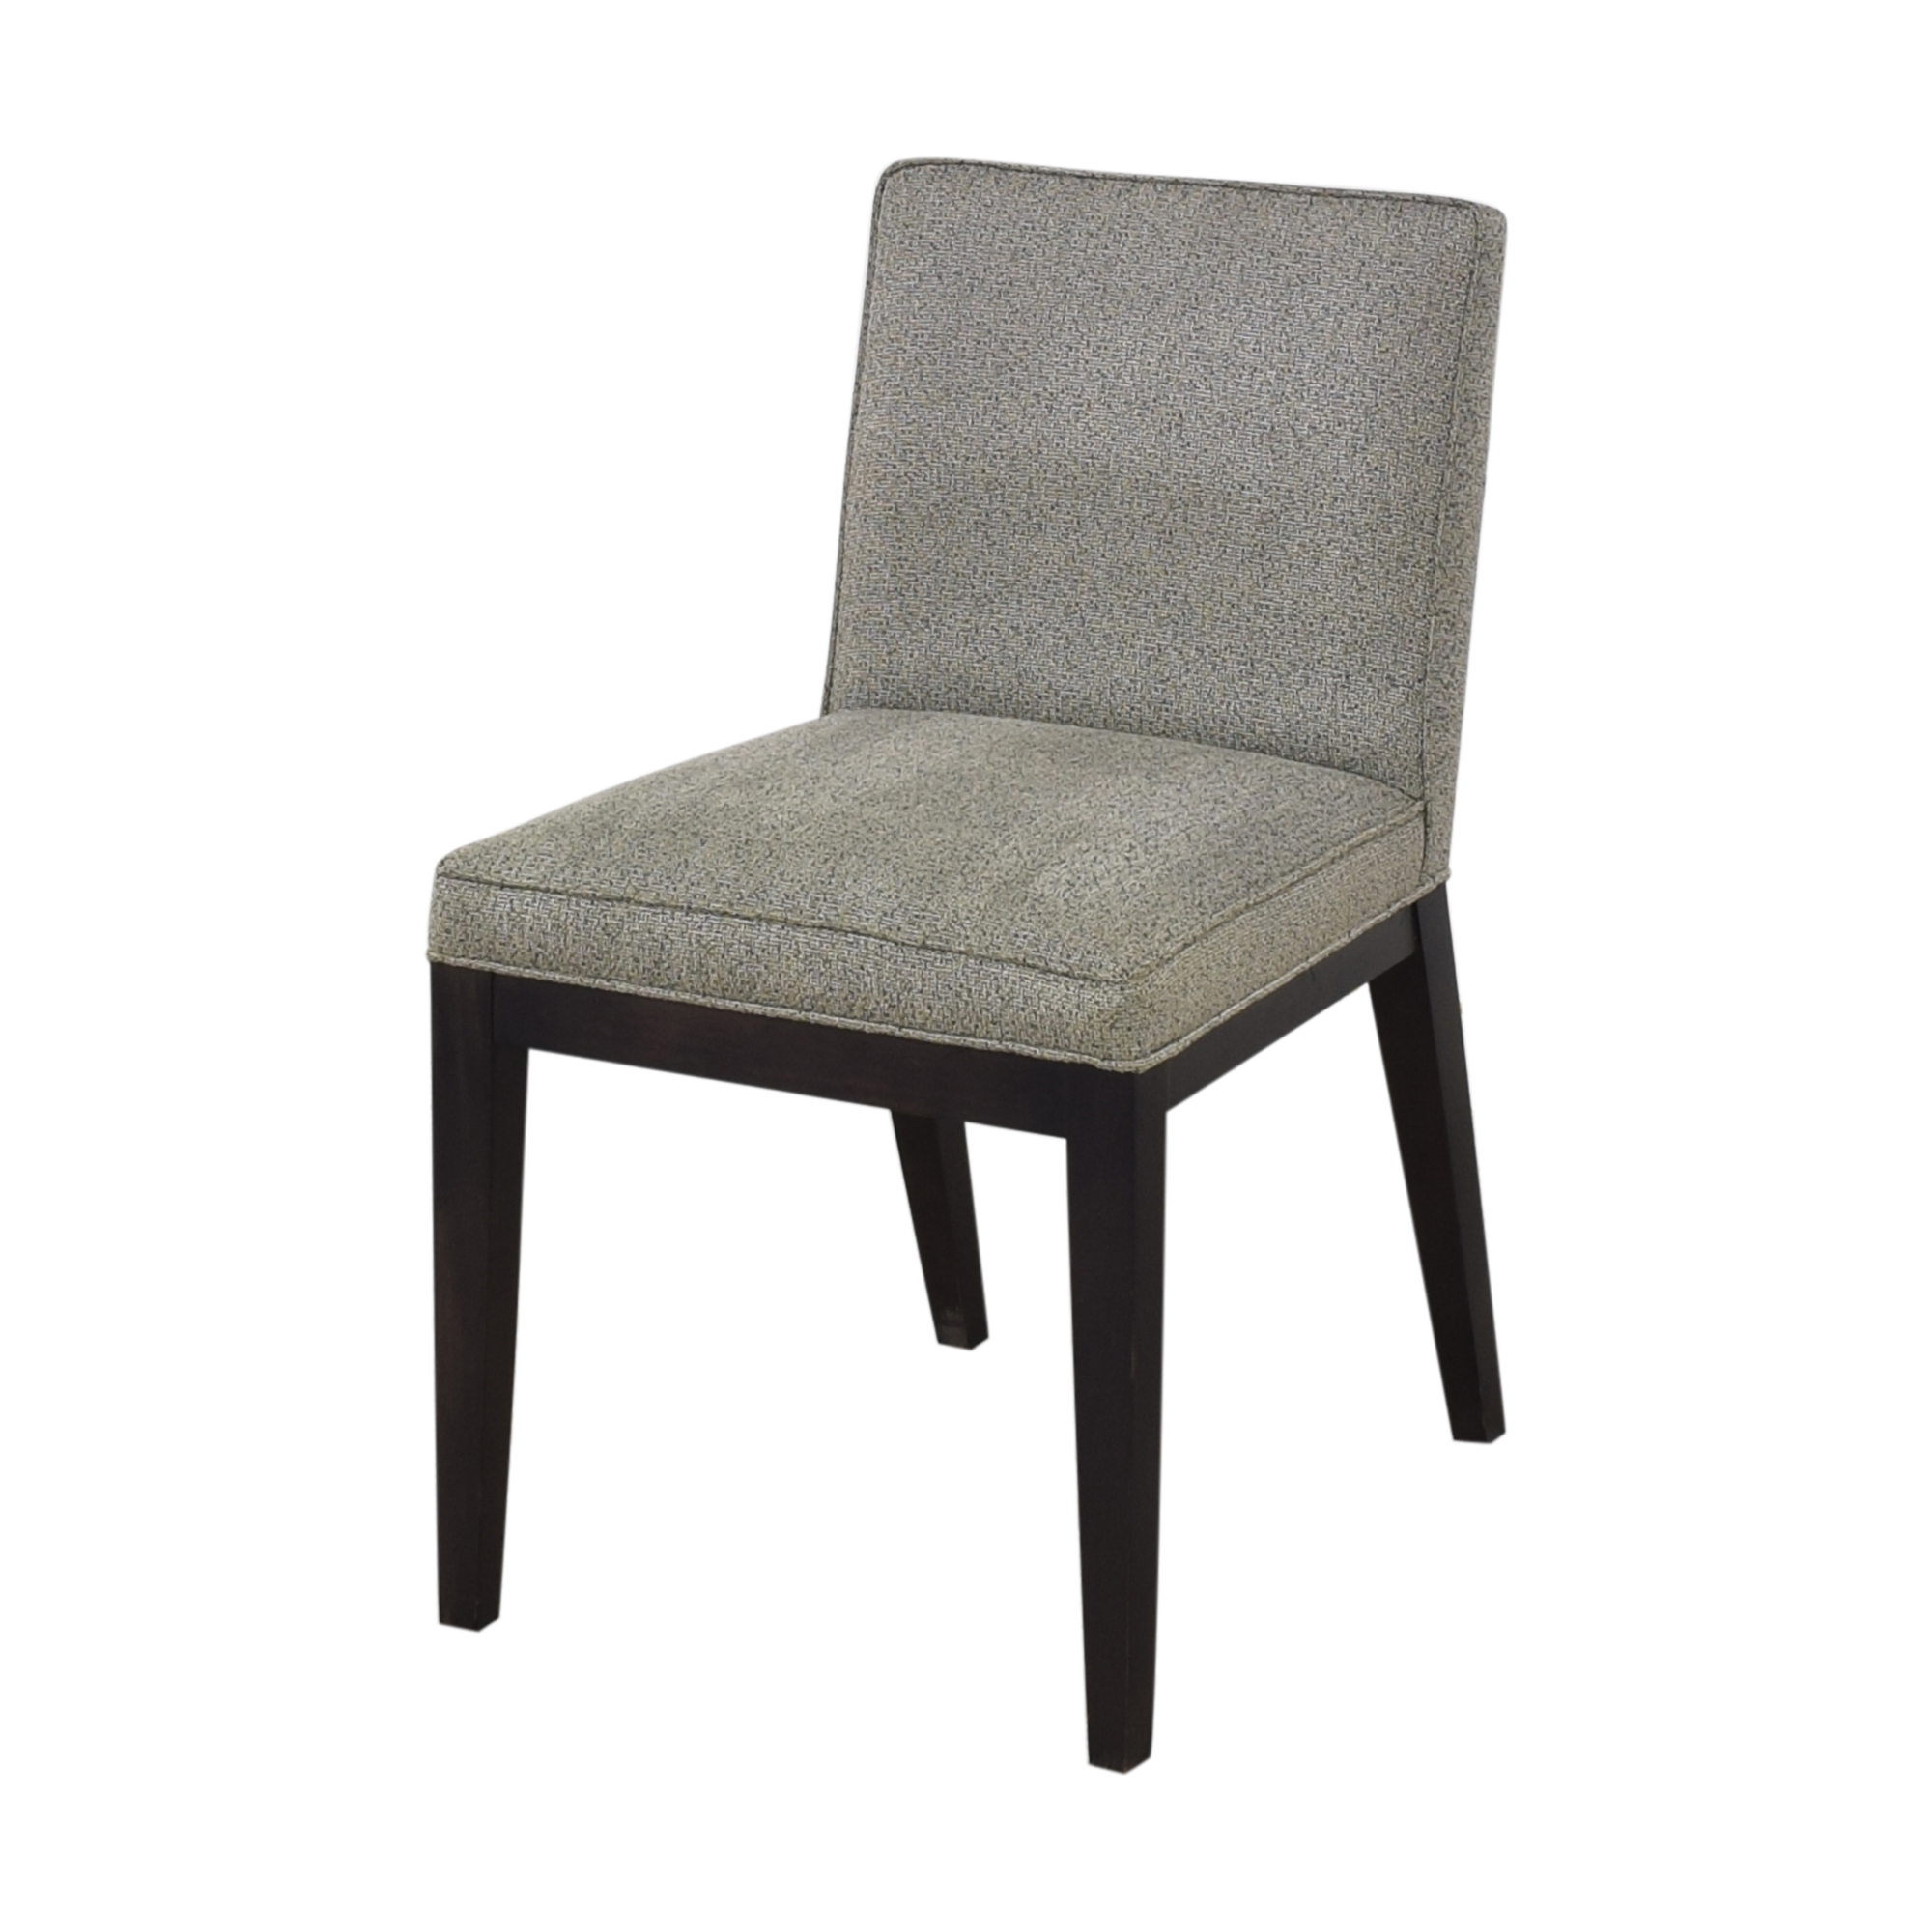 Room & Board Room & Board Ansel Dining Side Chairs ct